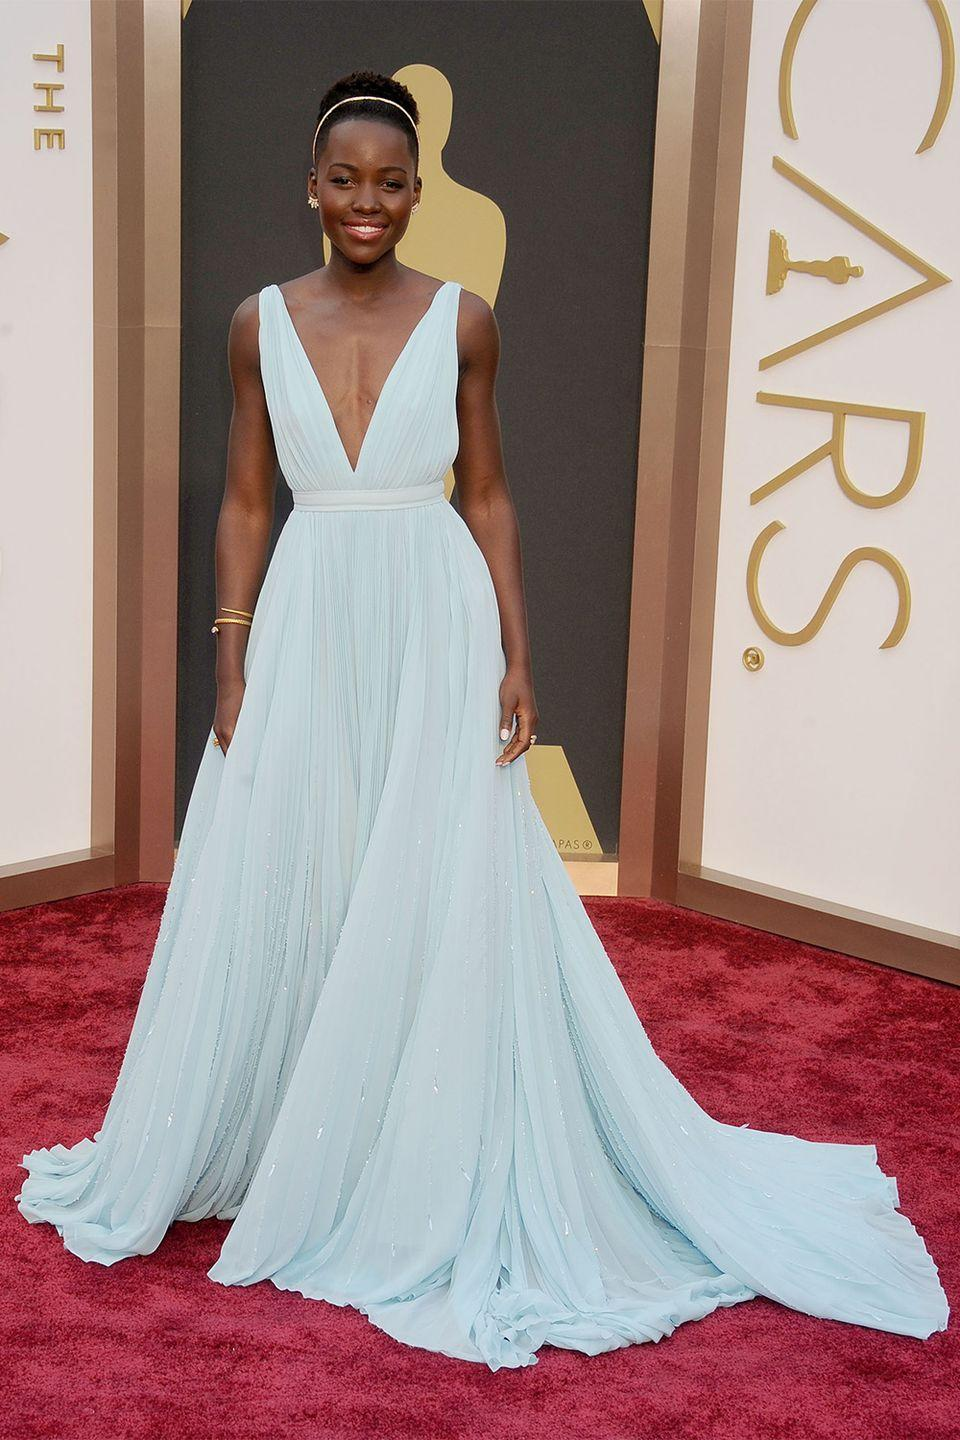 """<p>In the span of a year Lupita Nyong'o became a style icon. The actress described her custom Prada dress color as """"Nairobi blue"""" in honor of where she grew up in Kenya. </p>"""